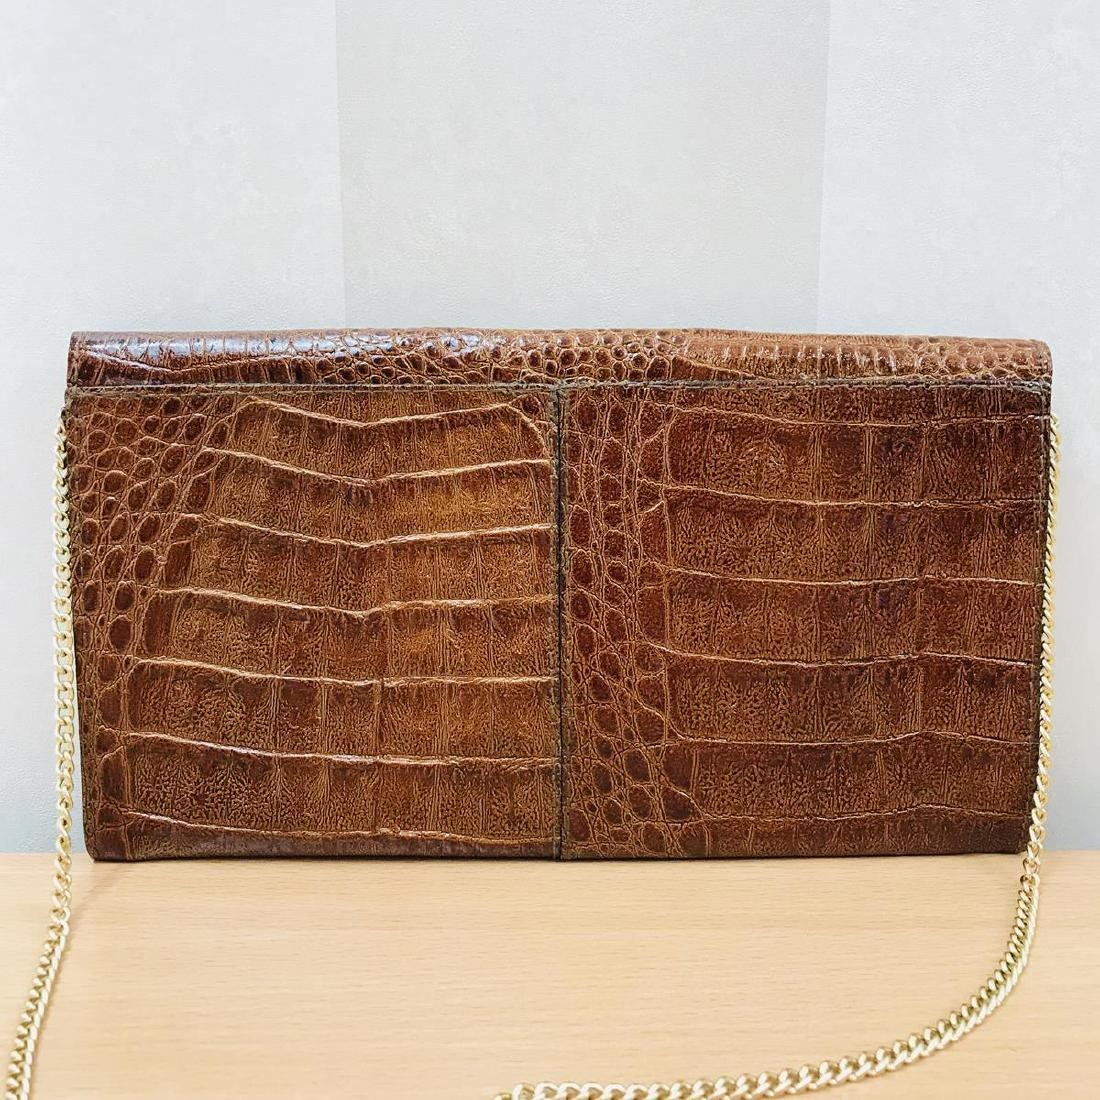 Vintage Crocodile Leather Clutch Bag - 6